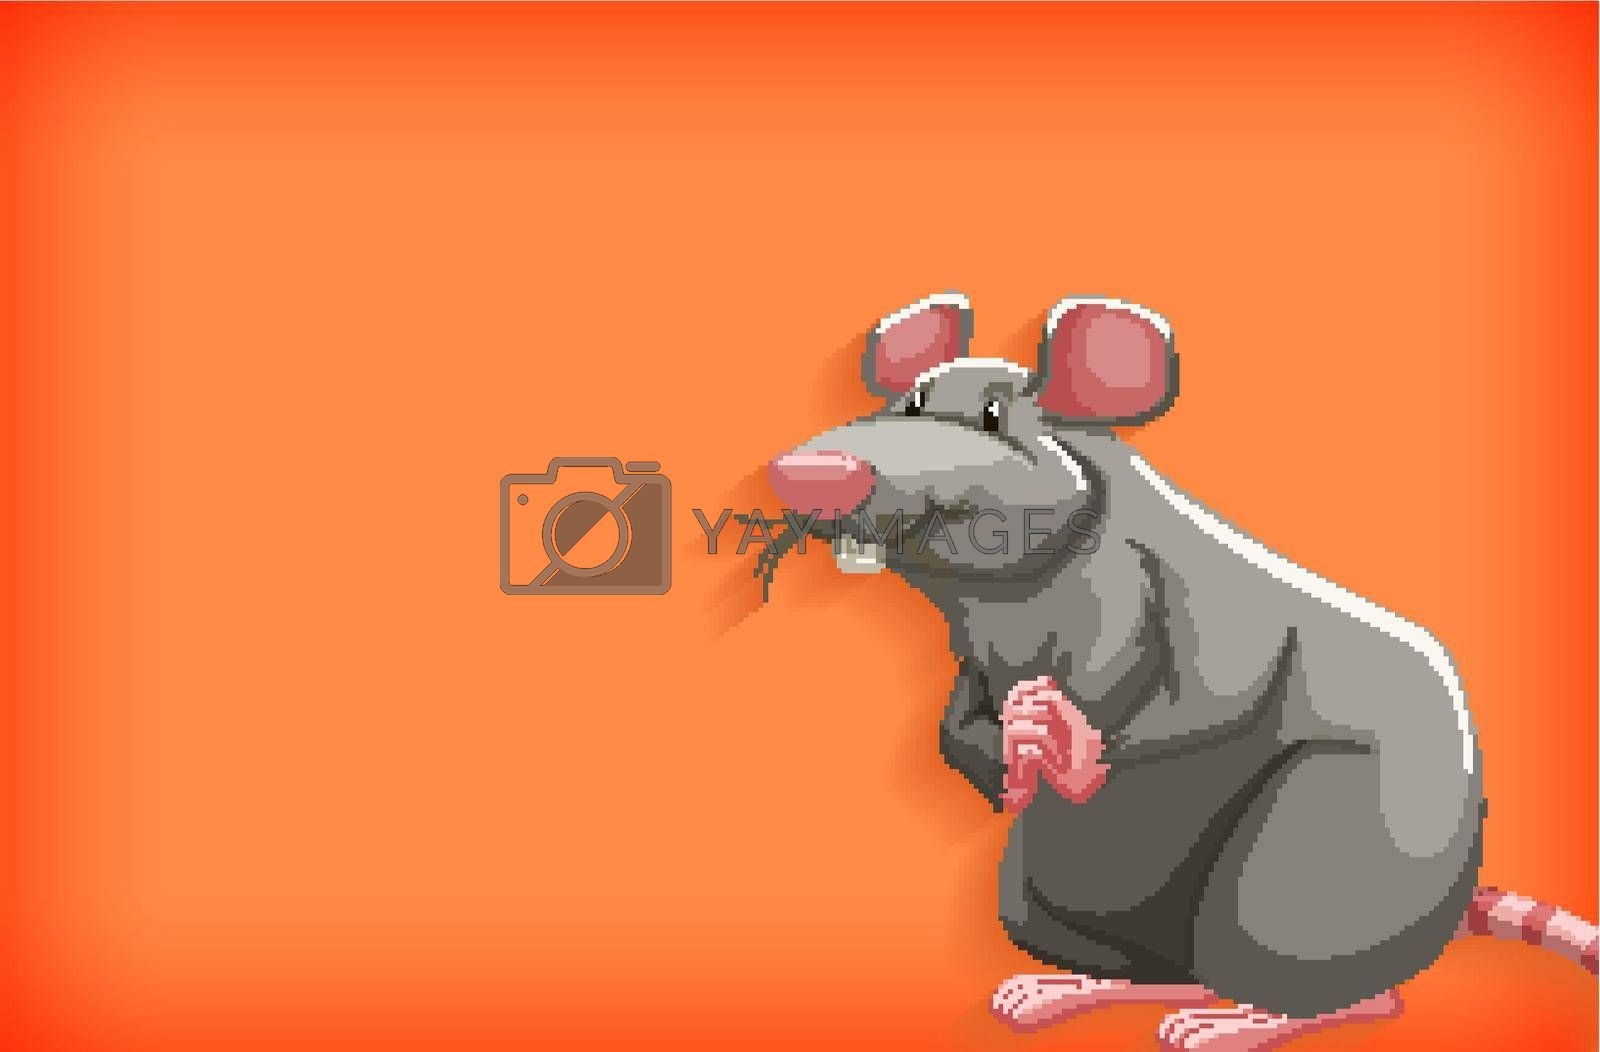 Background template with plain color and gray mouse illustration